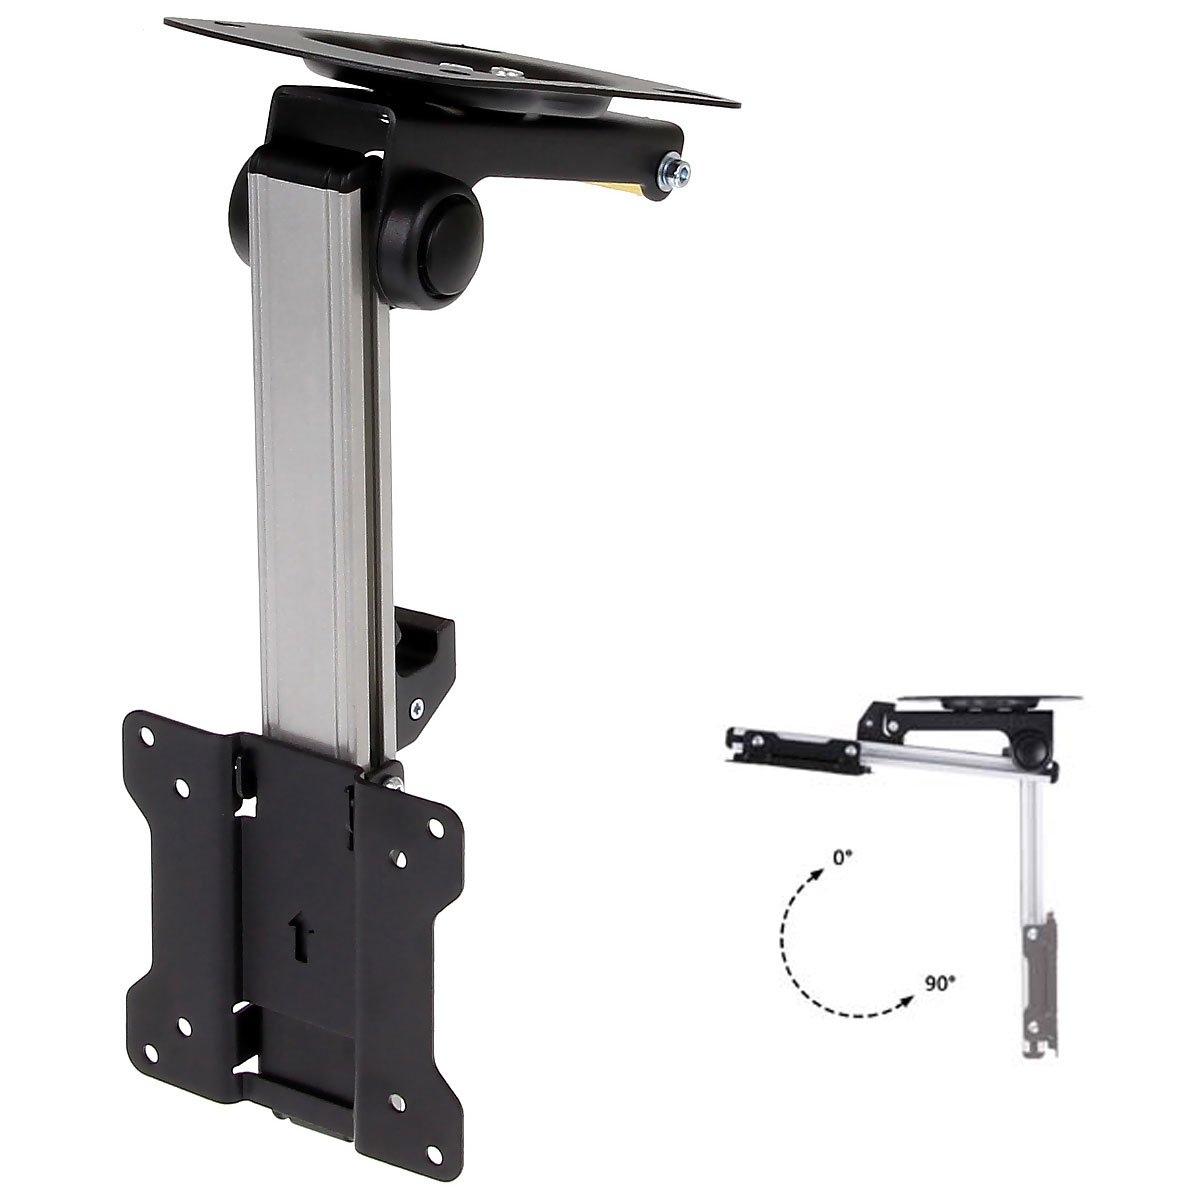 m tilt folding to dp mount amazon mounting for down monitors vivo ceiling flip under tv manual pitched com lcd flat roof cabinet